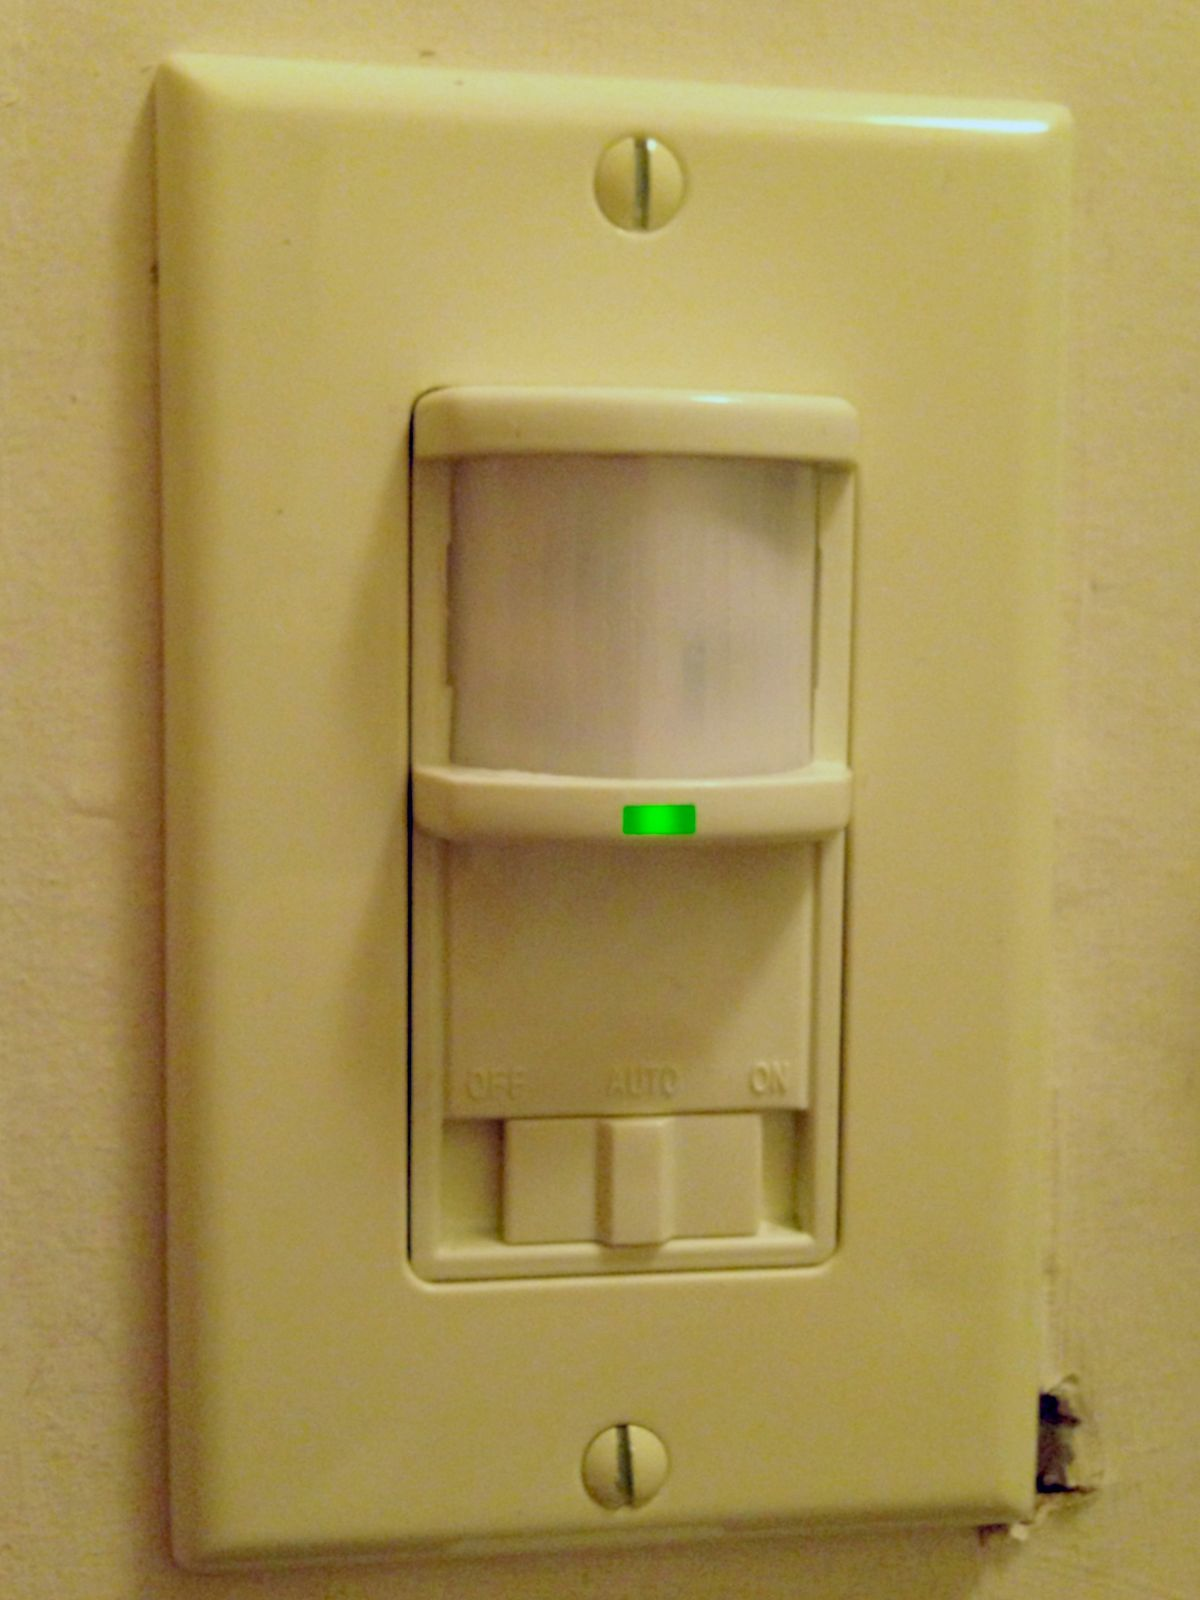 Occupancy sensor wikipedia aloadofball Image collections